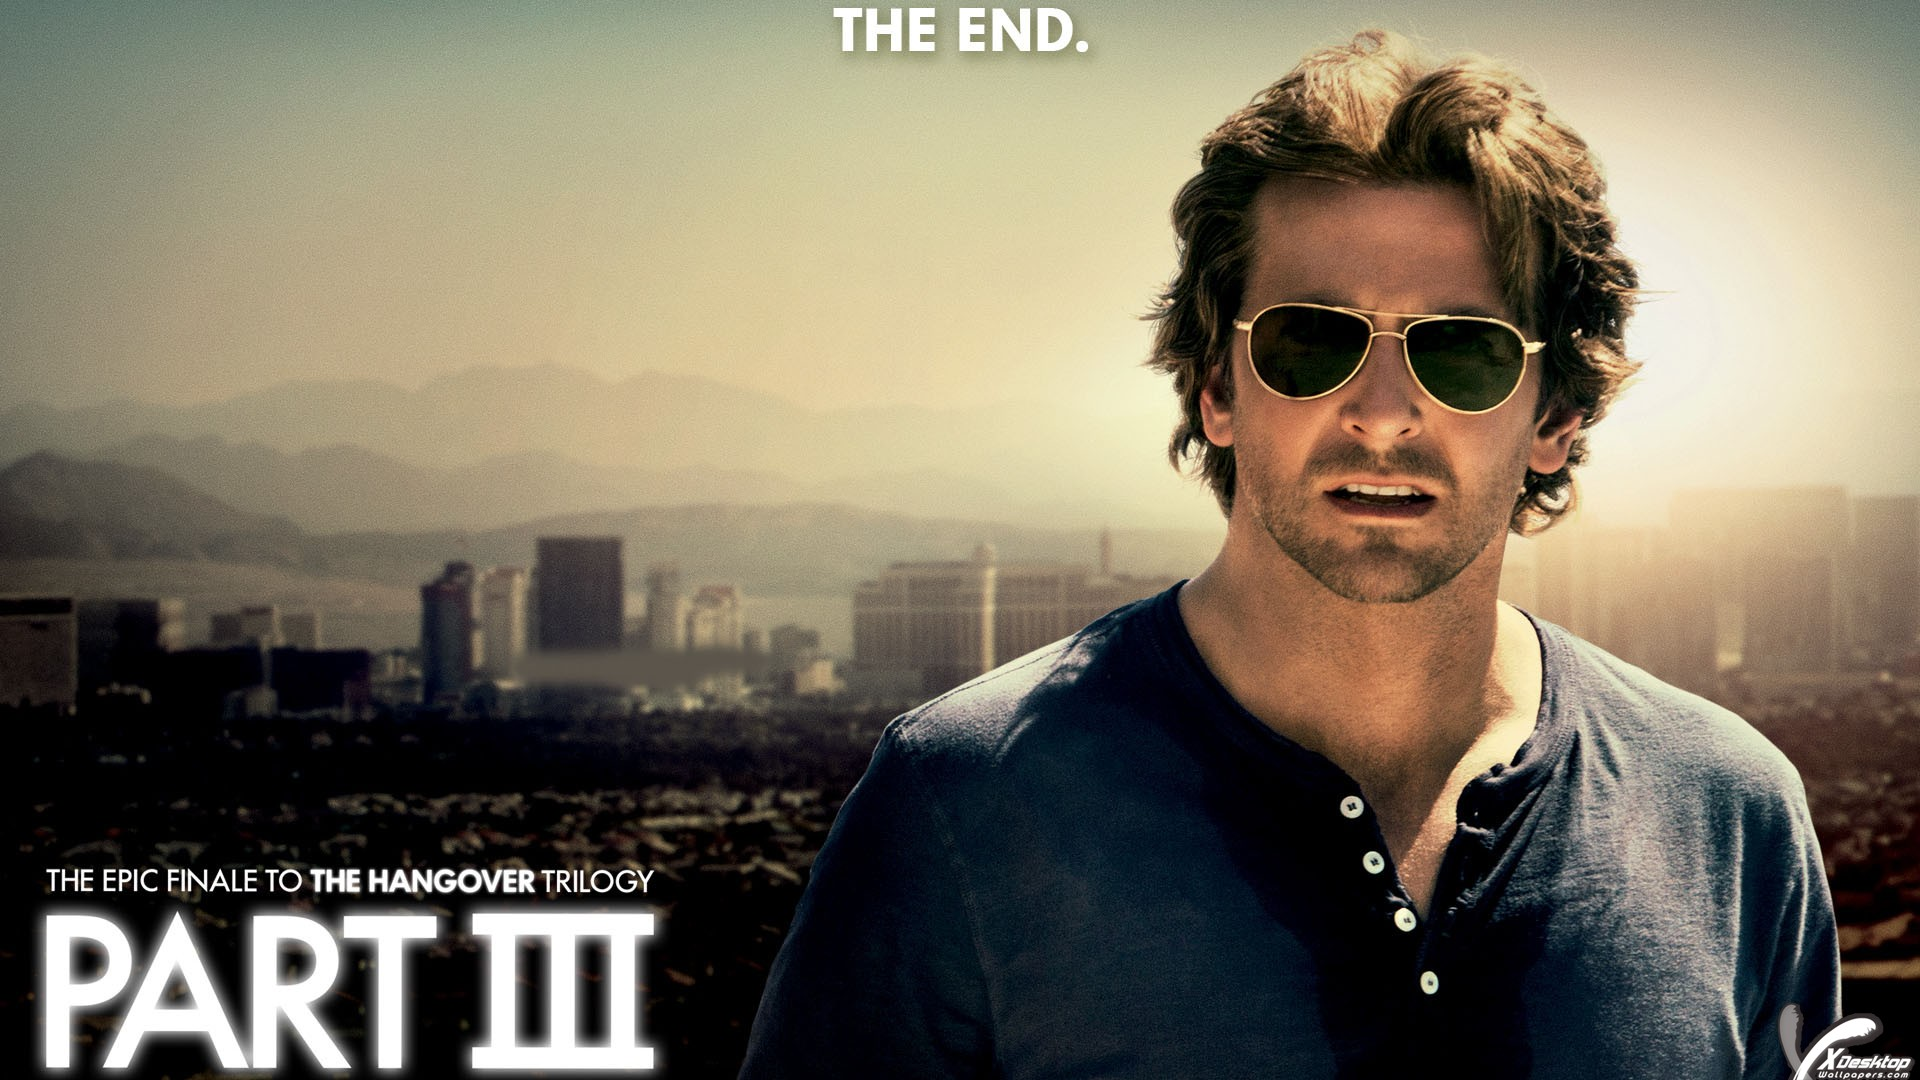 Bradley Cooper Wallpapers Photos Images in HD 1920x1080